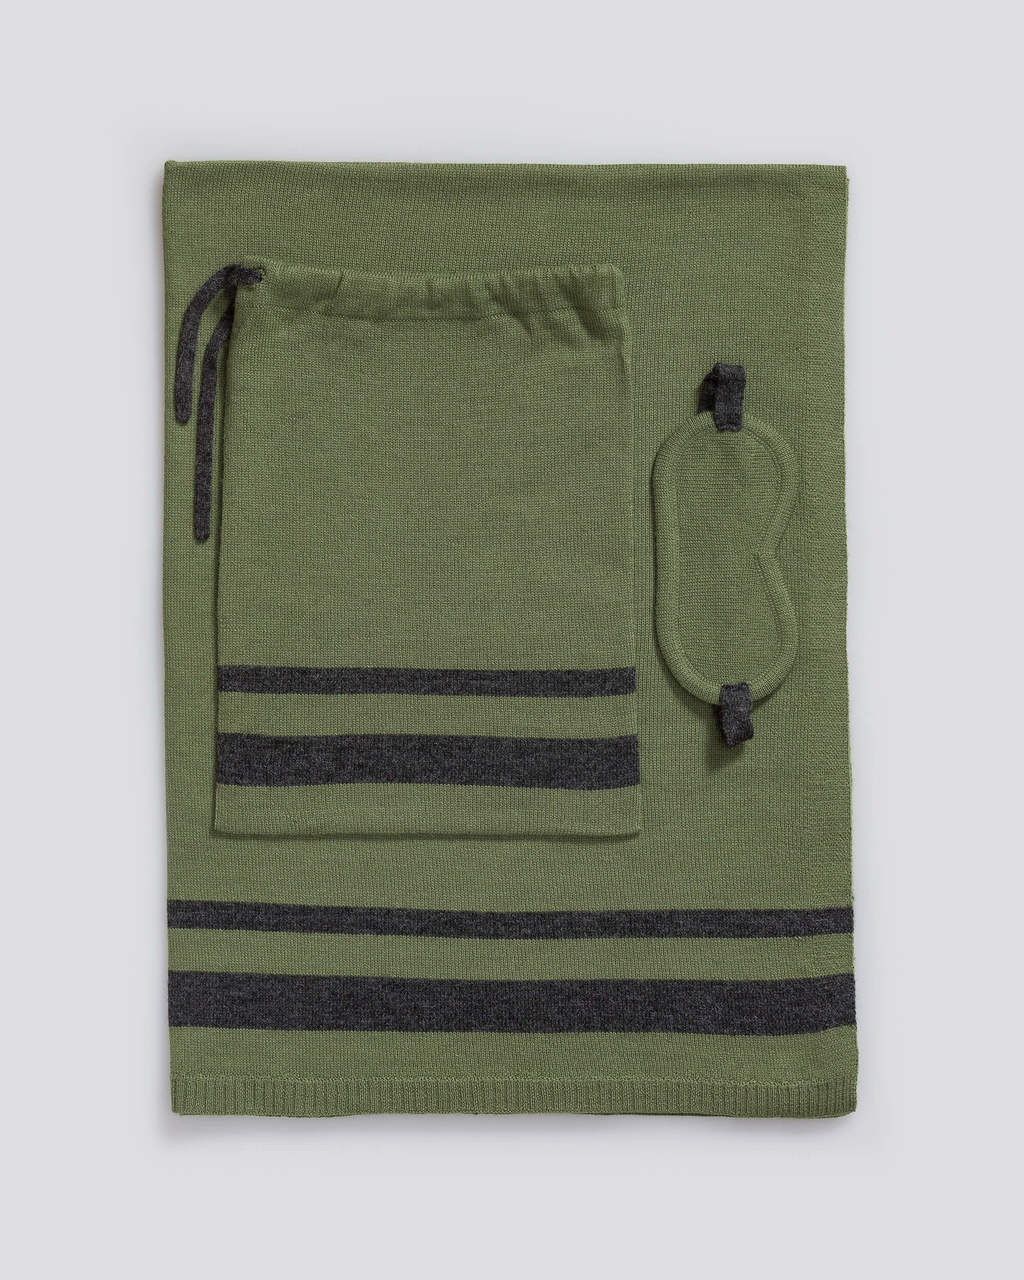 Alicia Adams Alpaca Striped Travel Set, alpaca gifts, alpaca travel blanket, airline travel kit with blanket and eye mask, hunter green and charcoal alpaca travel set